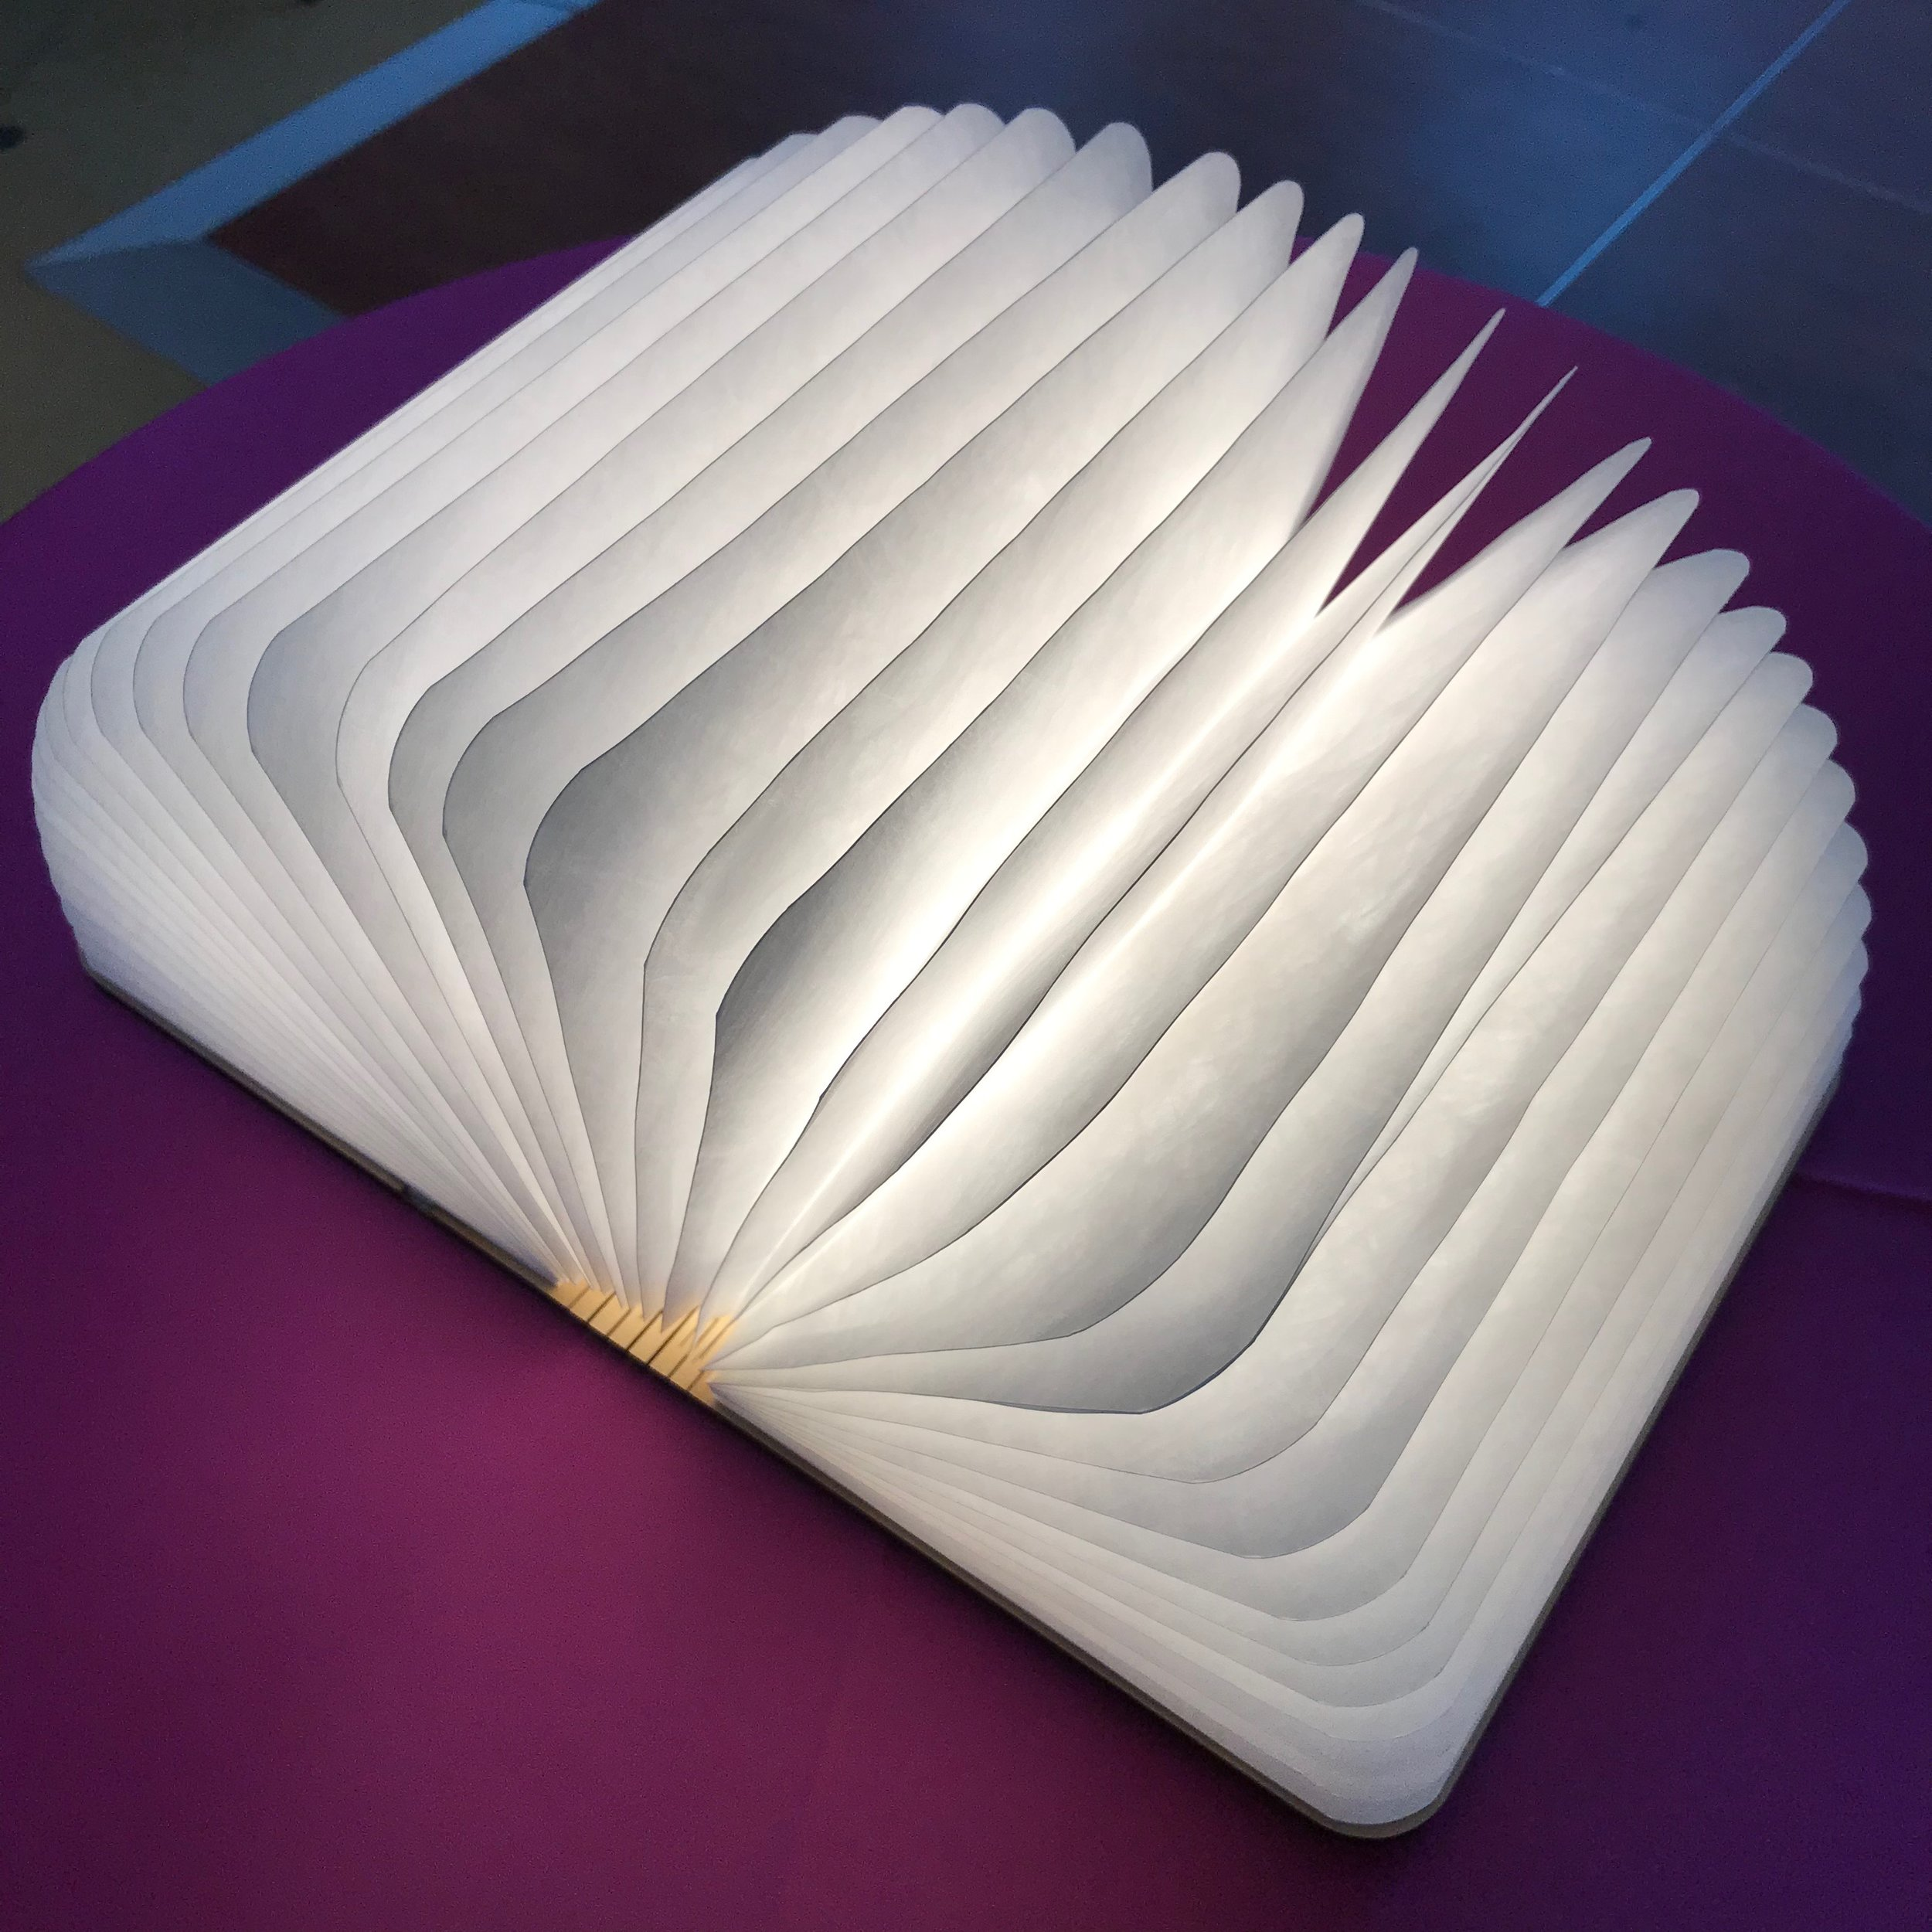 Book lights by DJ Jim Cerone